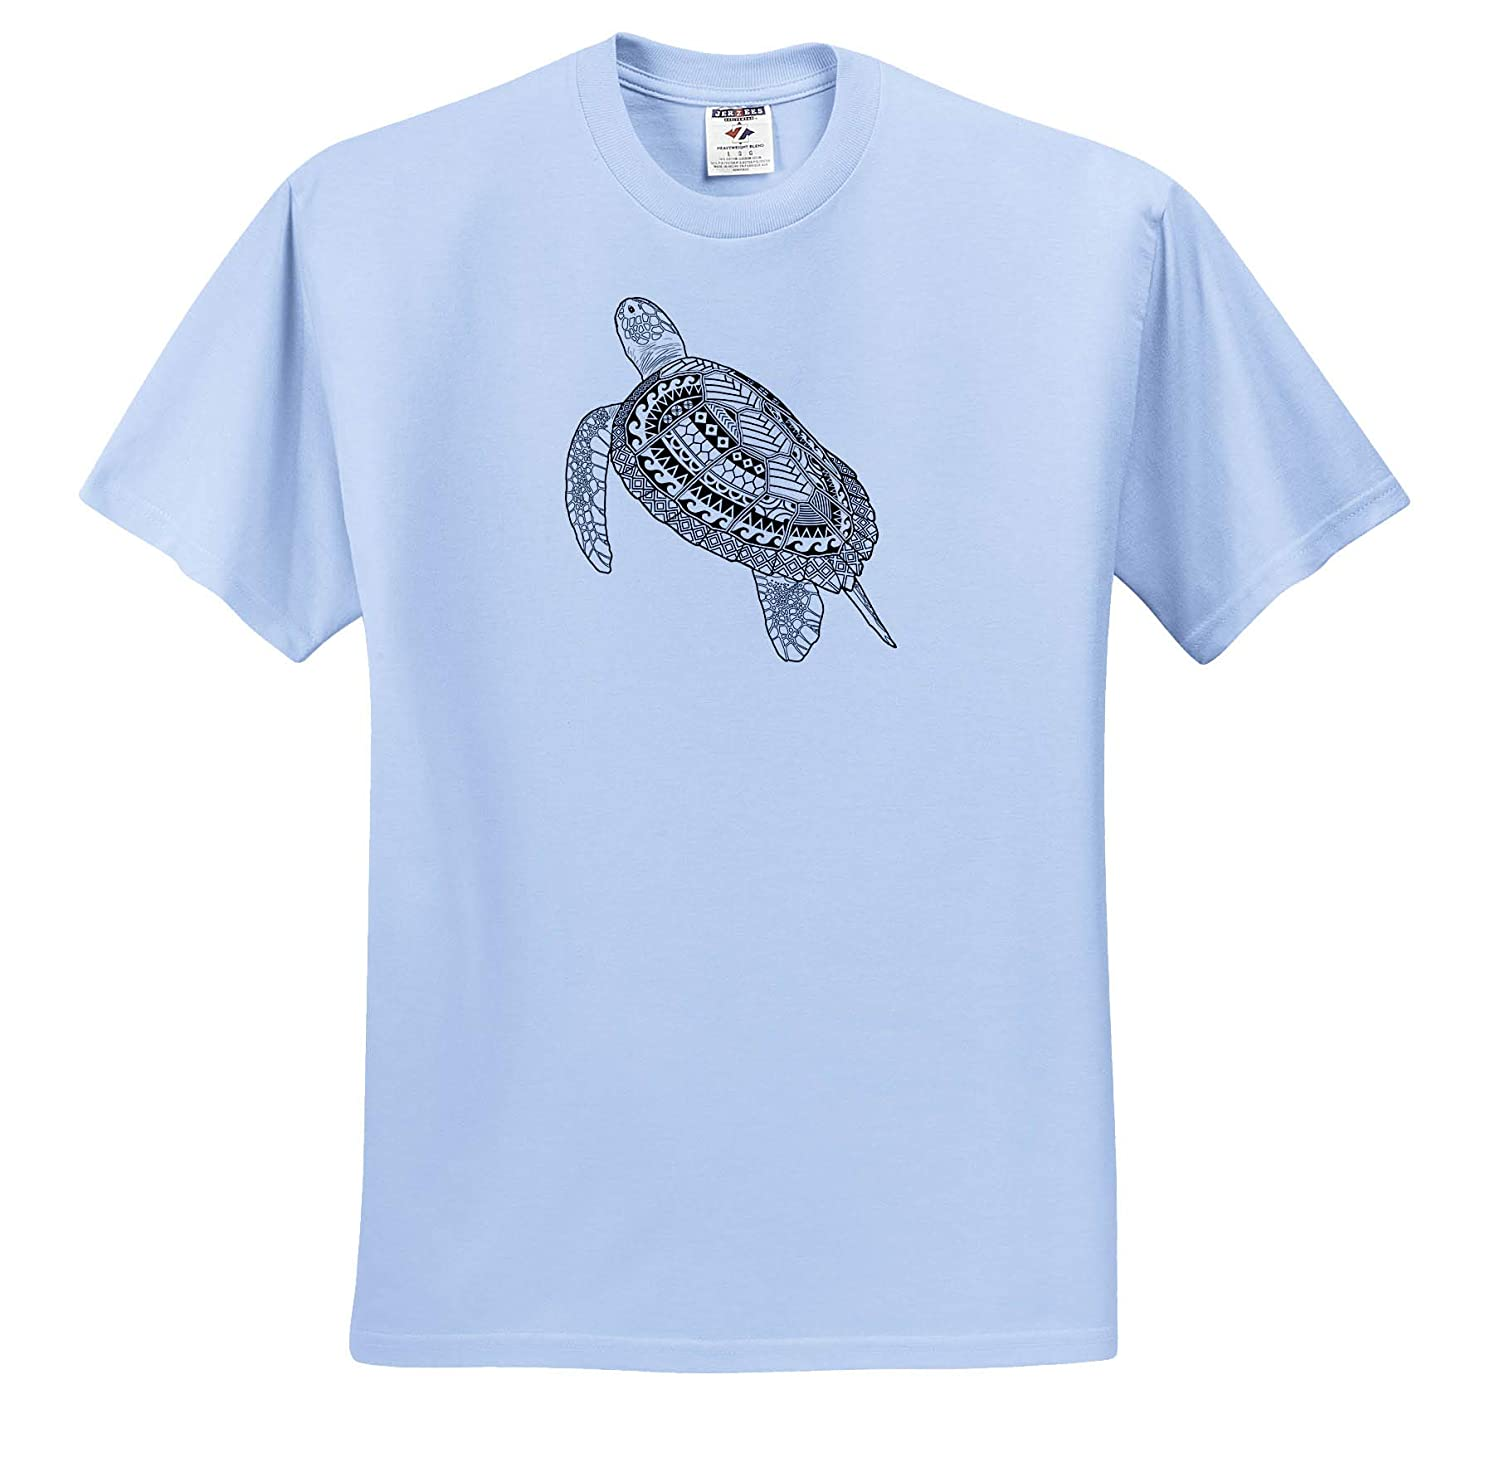 - T-Shirts 3dRose Macdonald Creative Studios A Black and White Detailed Polynesian Tribal sea Turtle Tribal Animals